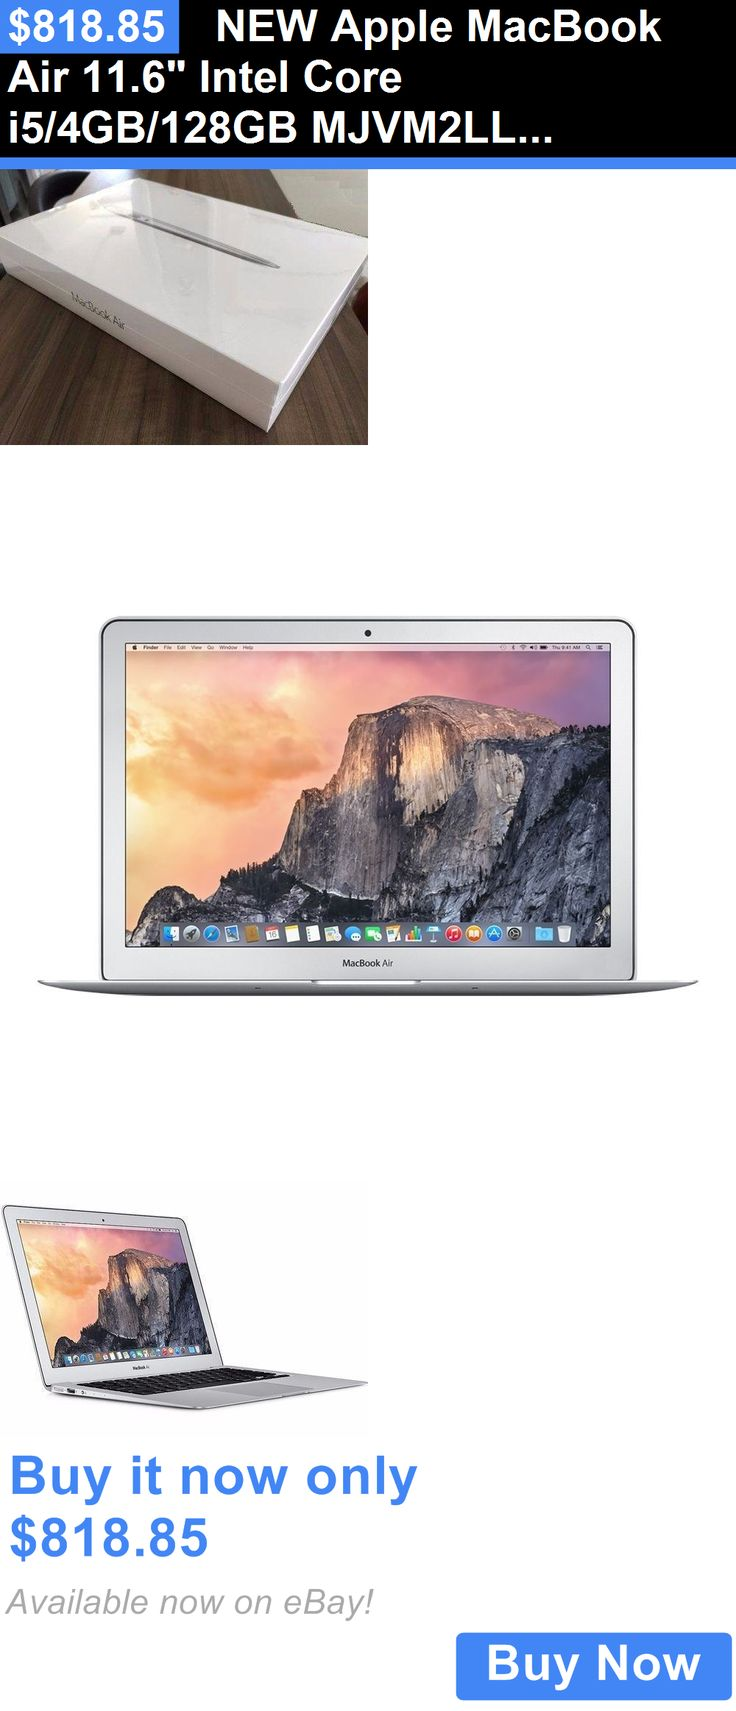 general for sale: New Apple Macbook Air 11.6 Intel Core I5/4Gb/128Gb Mjvm2ll/A World Ship Silver BUY IT NOW ONLY: $818.85